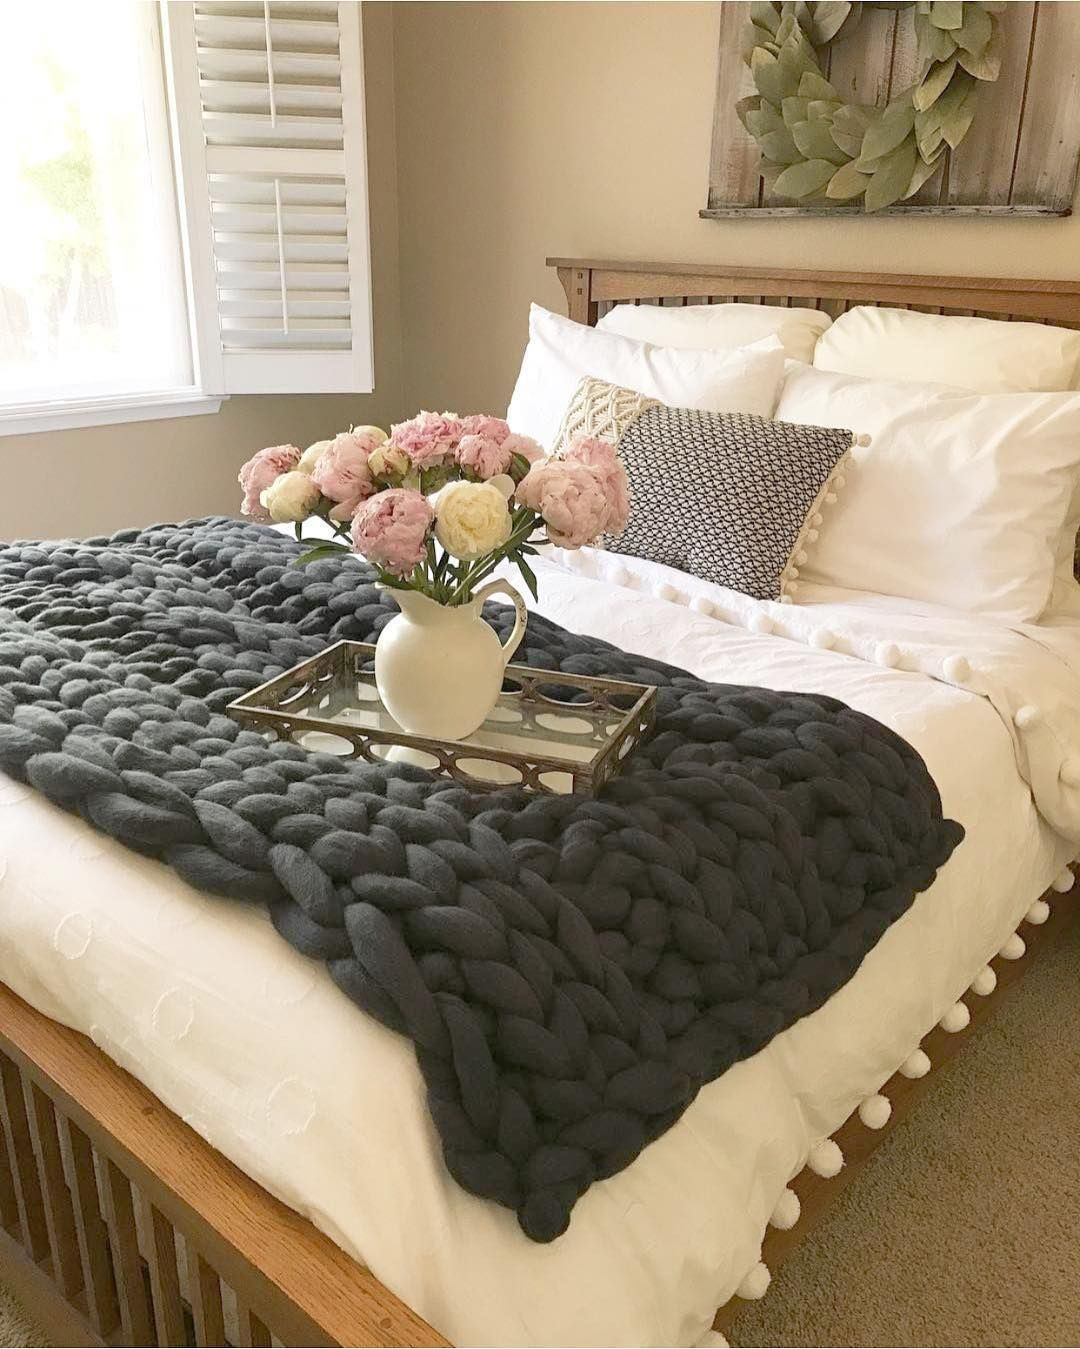 wicked 25 amazing guest bedroom makeover on a budget https